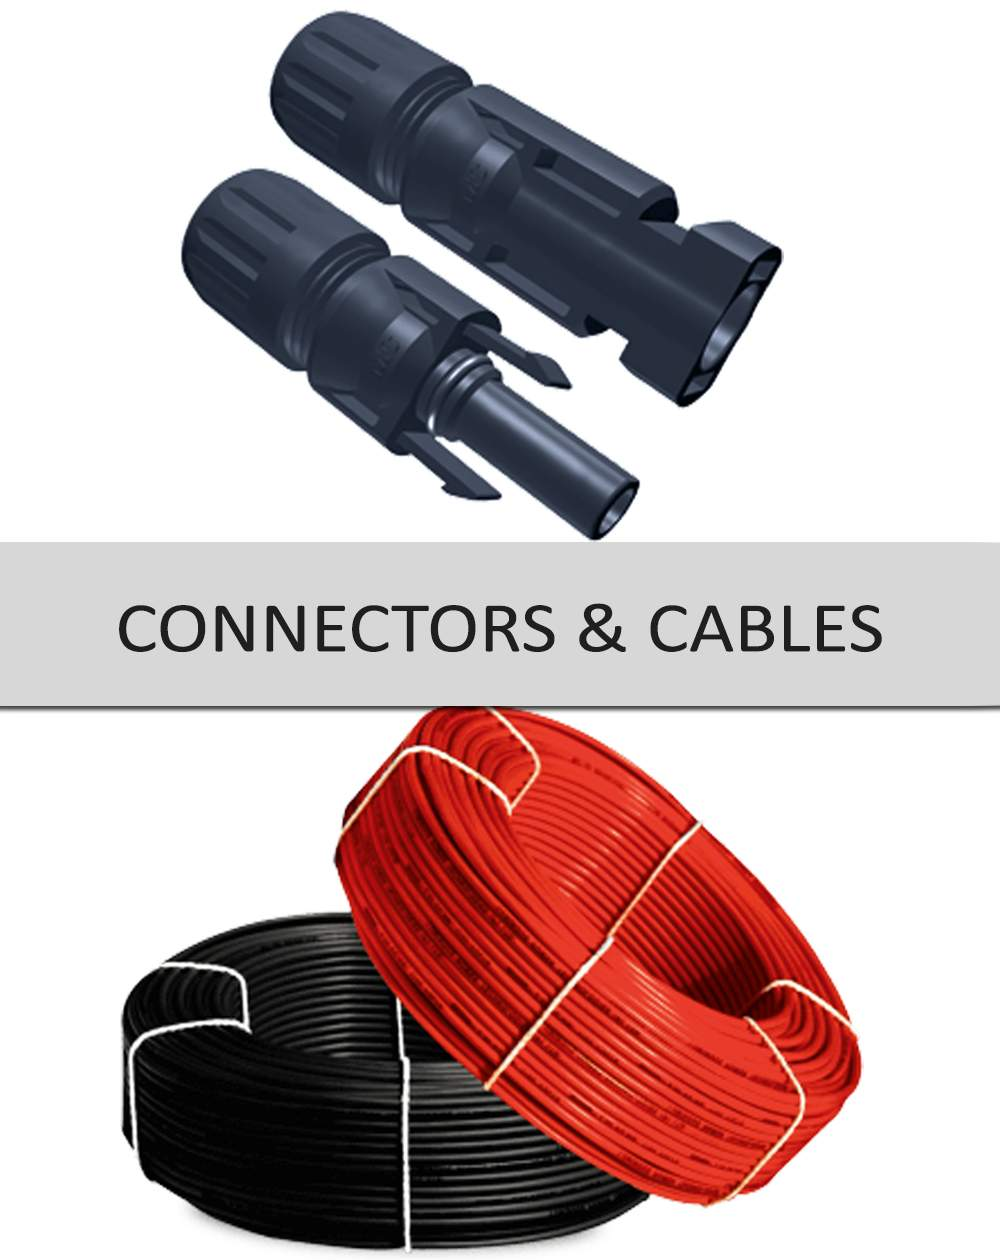 Buy low price, high quality mc4 connectors, PV wire, battery cables and much more in South Africa